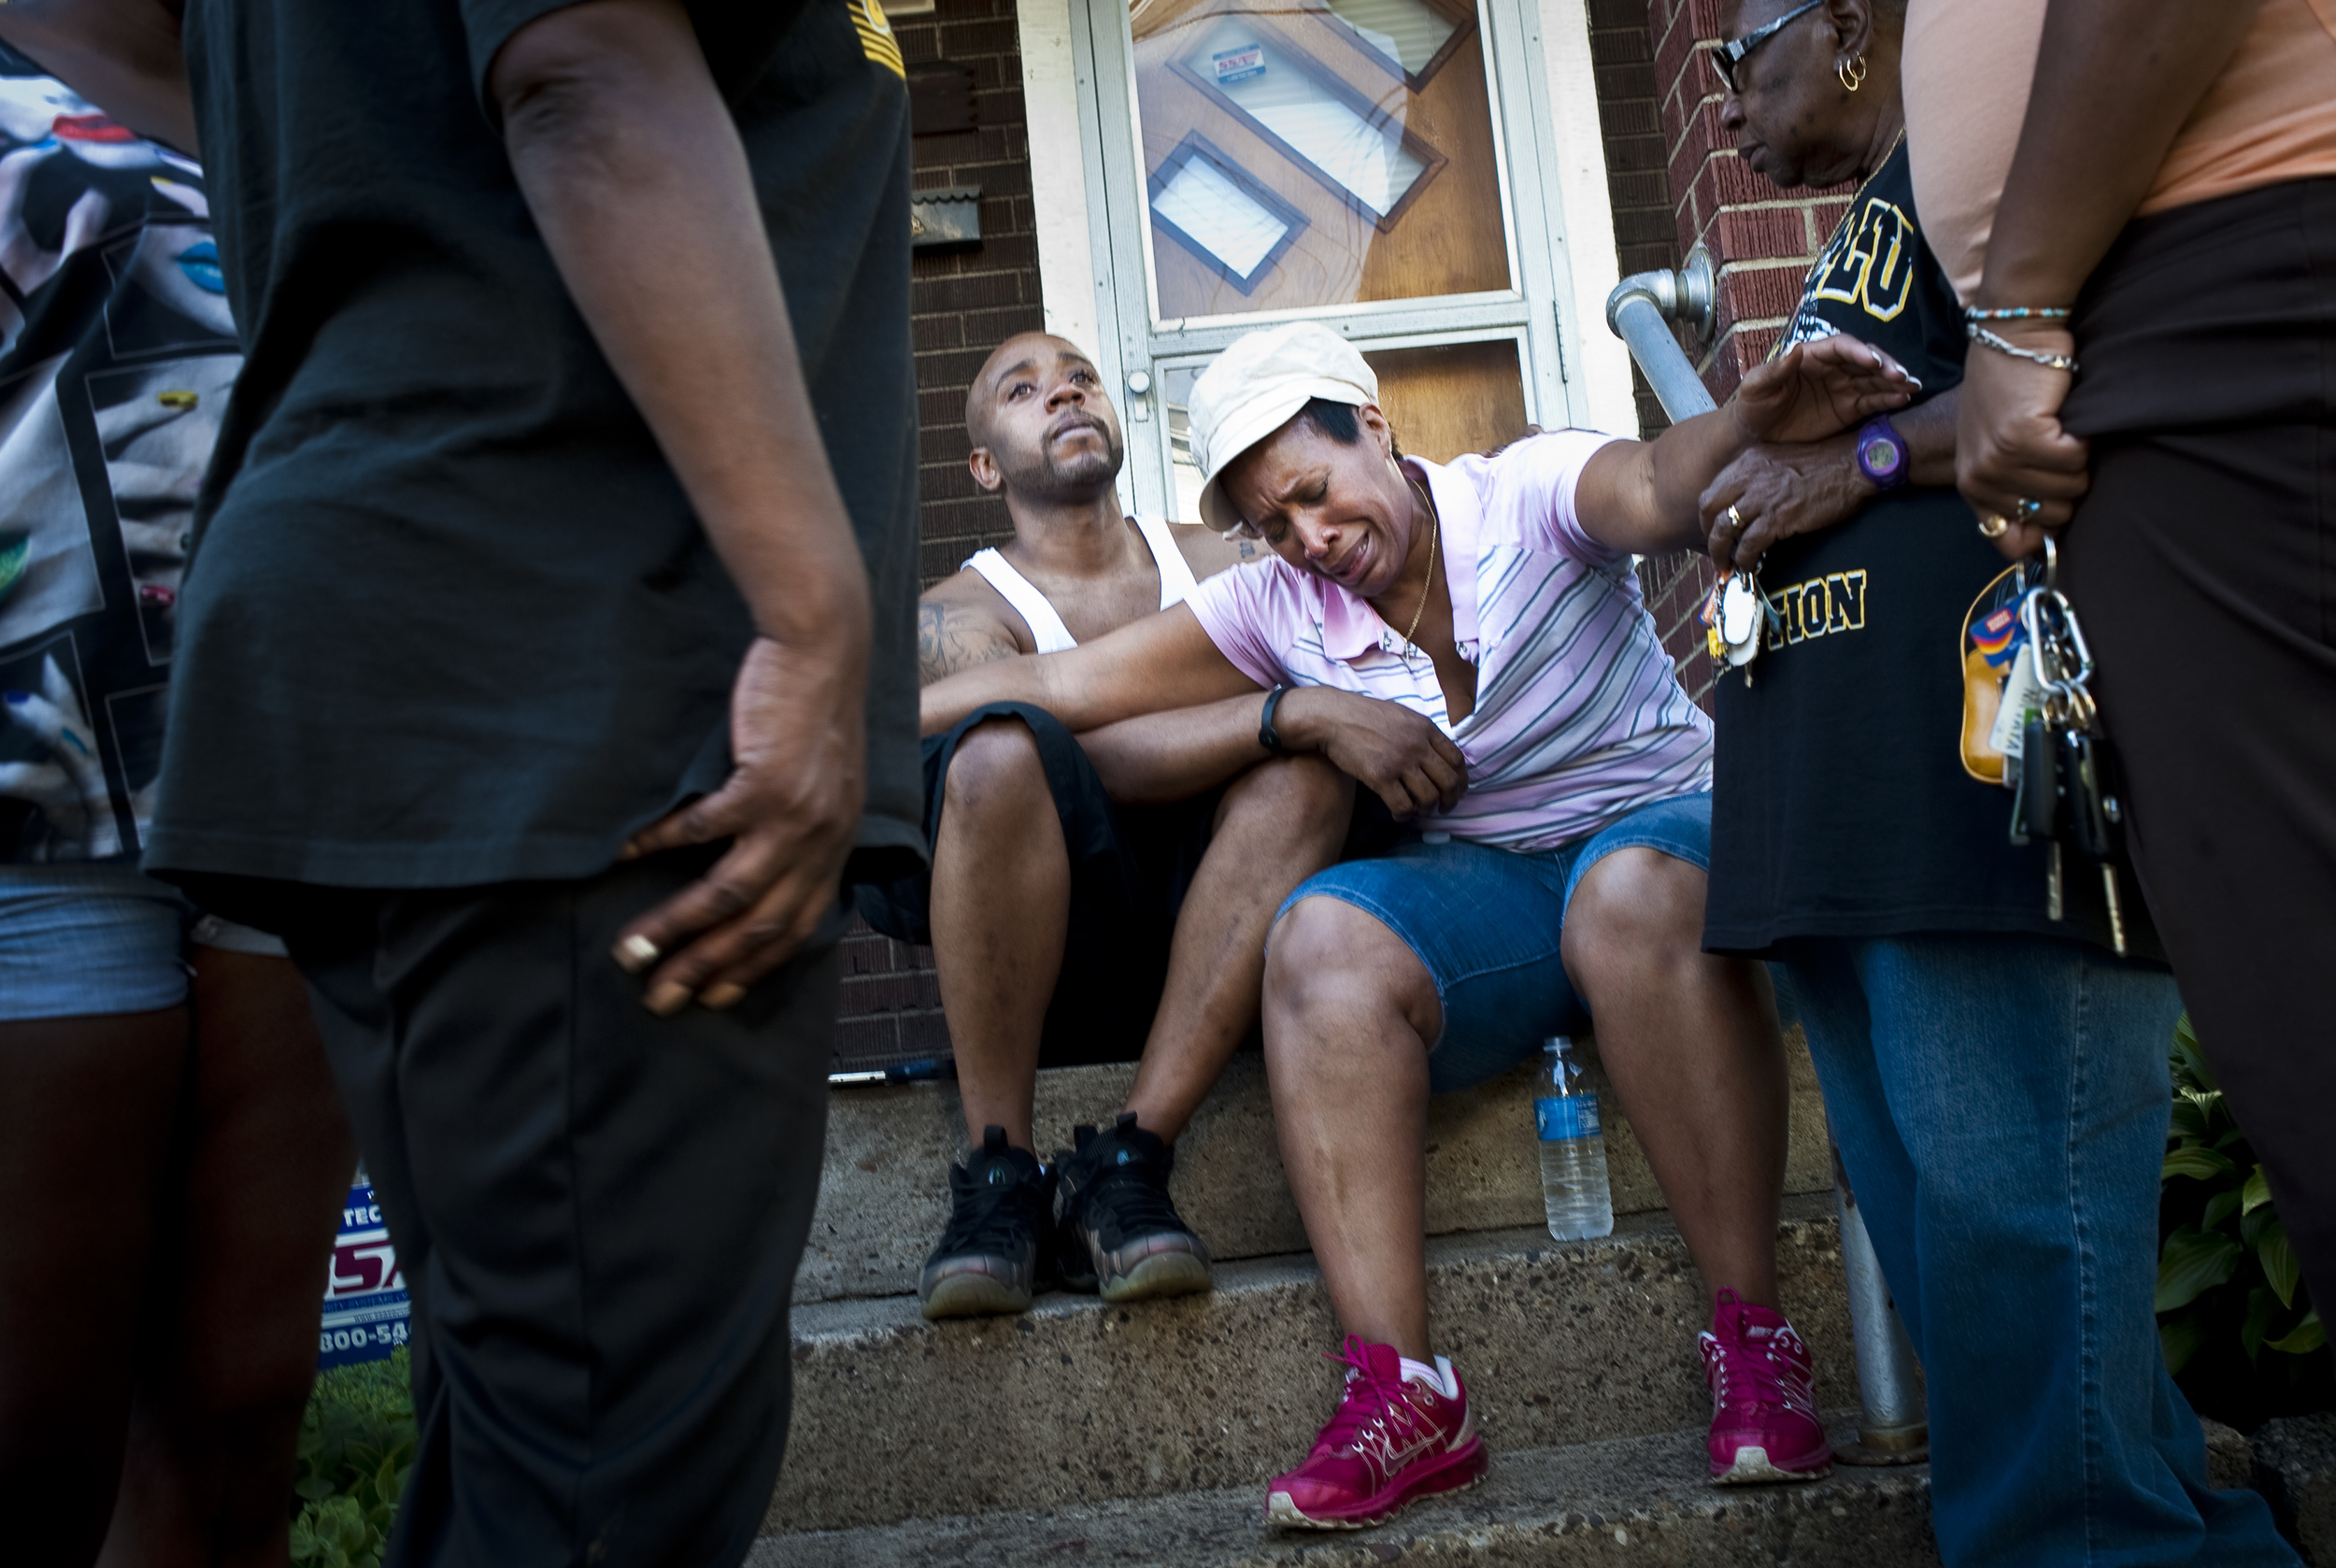 Dominic Reaves comforts his mother Alicia Reaves as she cries at the sight of her home in flames on North Holland Avenue in Rankin that caught fire Saturday evening, July 5, 2014